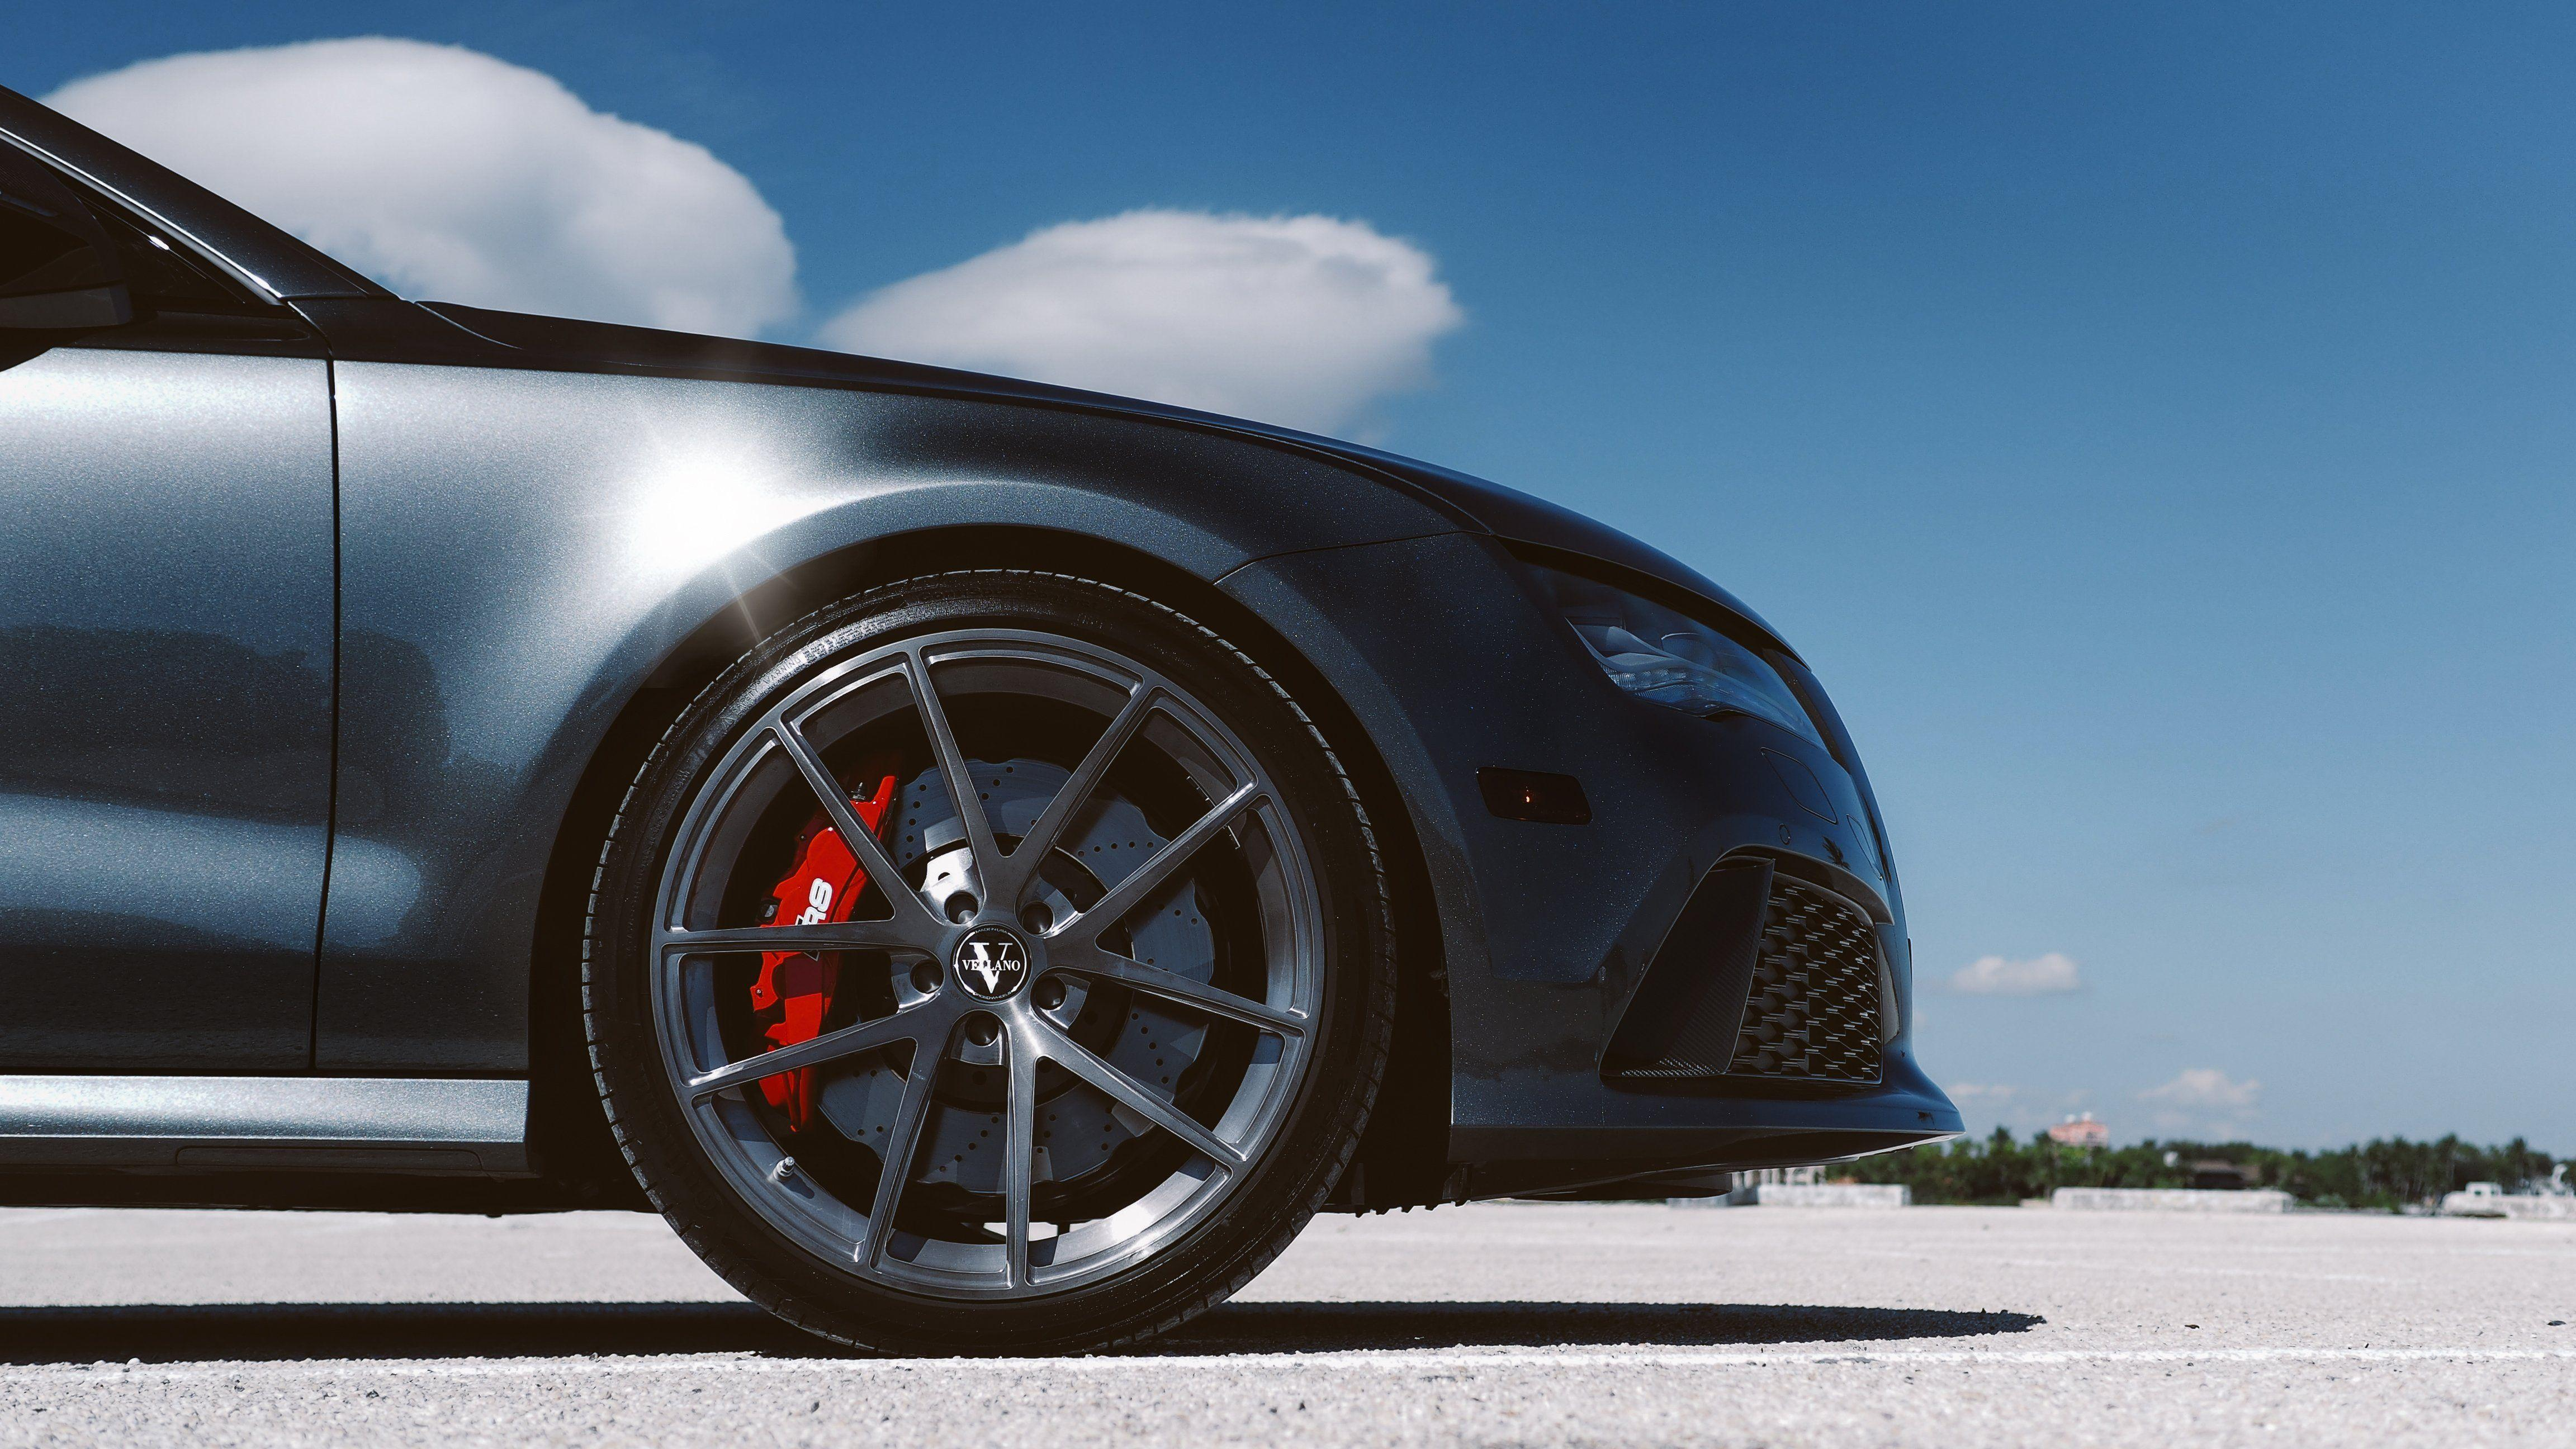 Audi RS7 Backgrounds 36962 4608x2592 px ~ HDWallSource